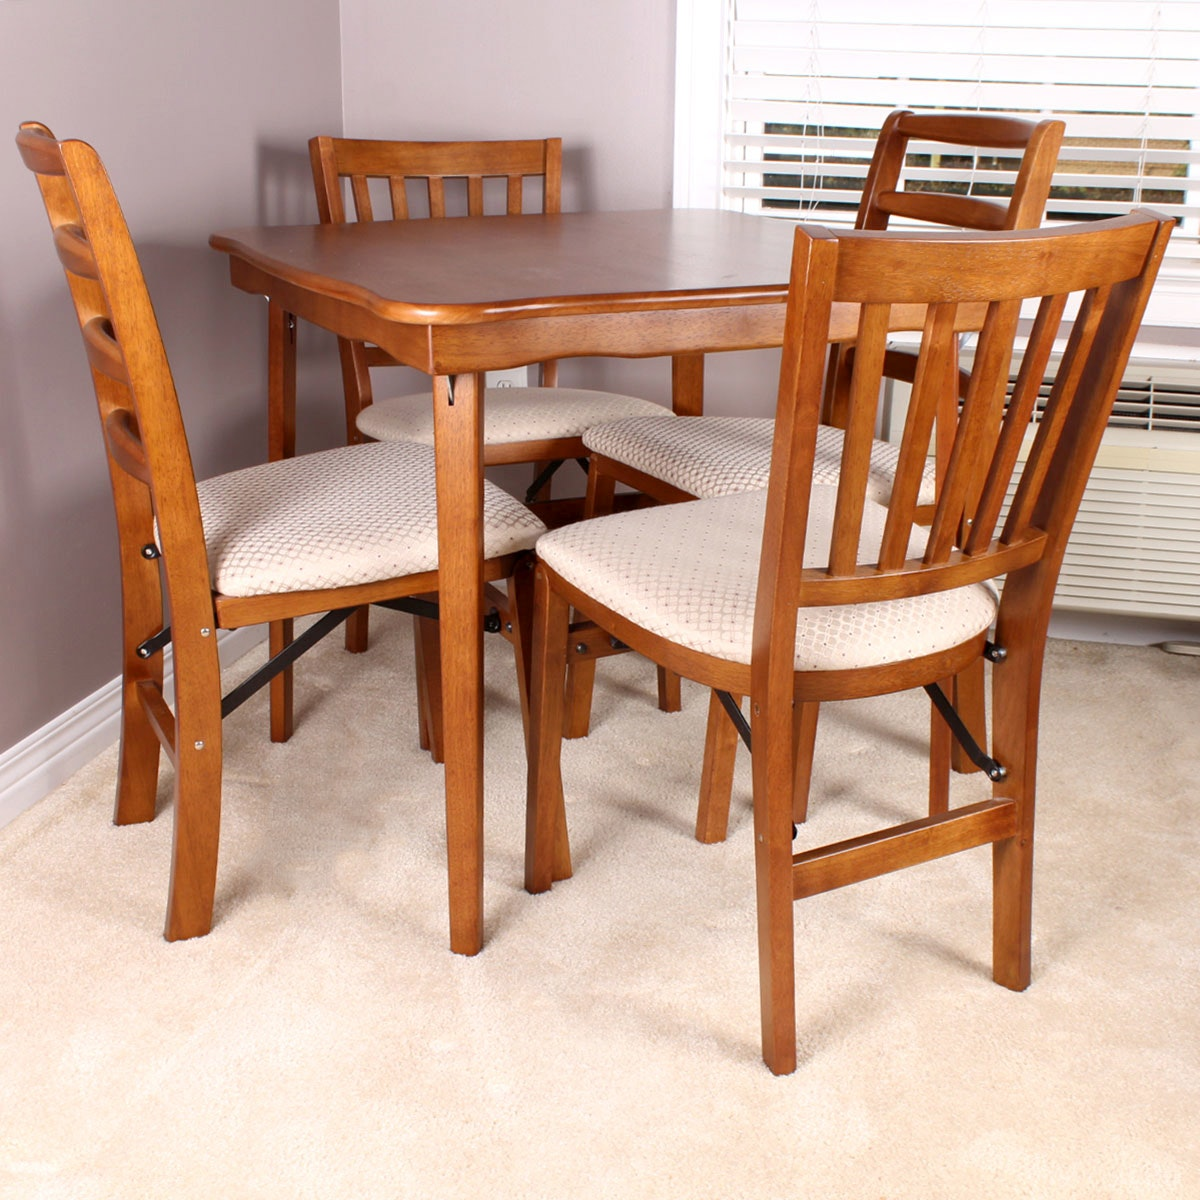 stakmore folding chairs and table ebth